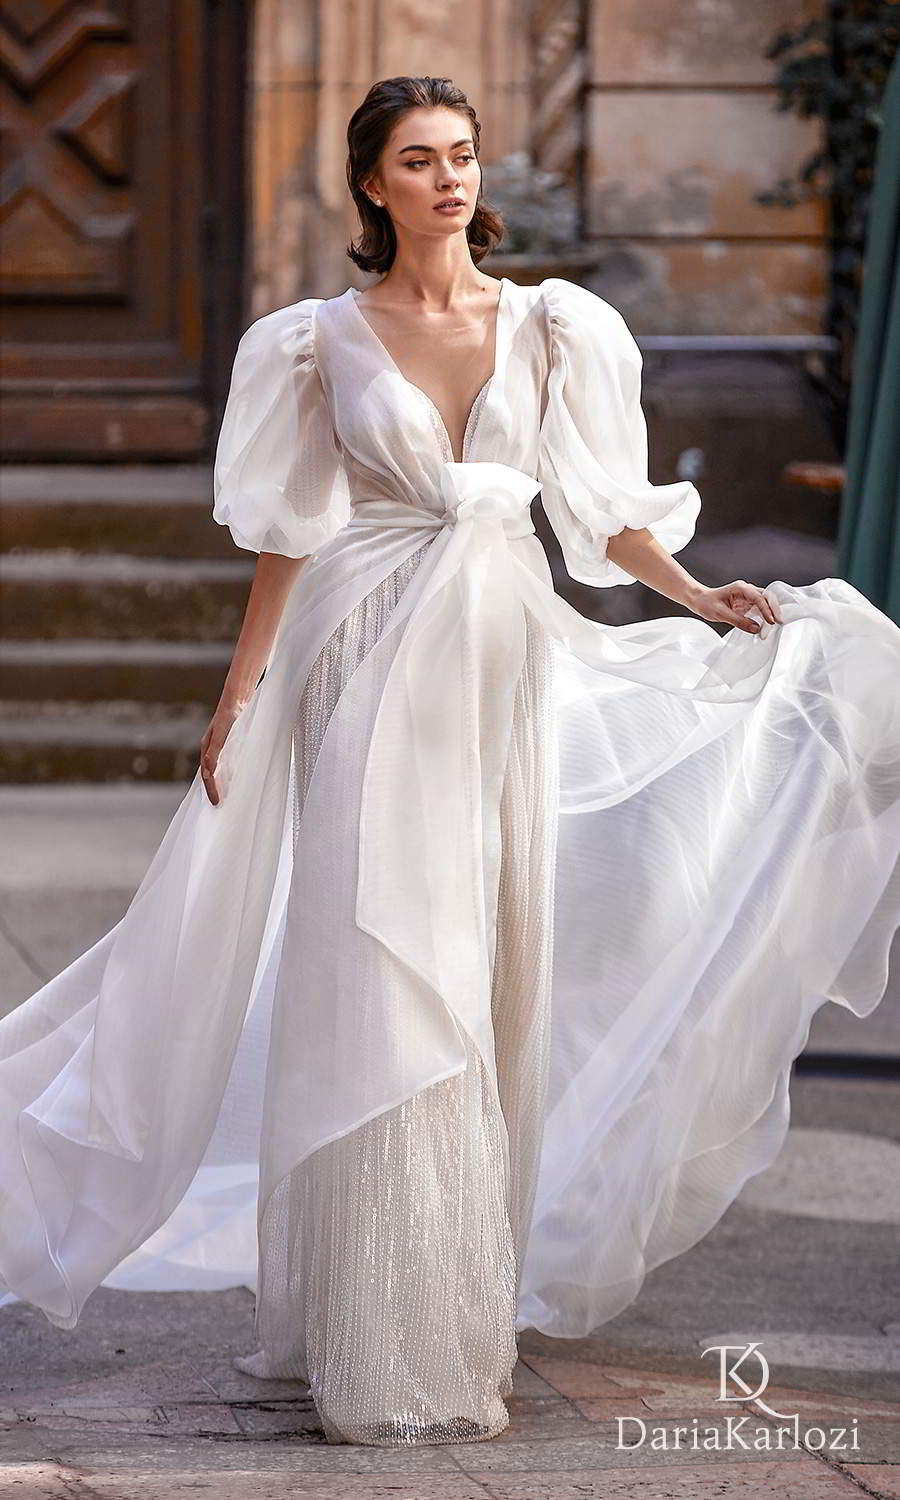 daria karlozi 2021 graceful dream bridal sleeveless illusion straps plunging sweetheart neckline fully embellished a line wedding dress puff sleeves coat (towards the love) mv